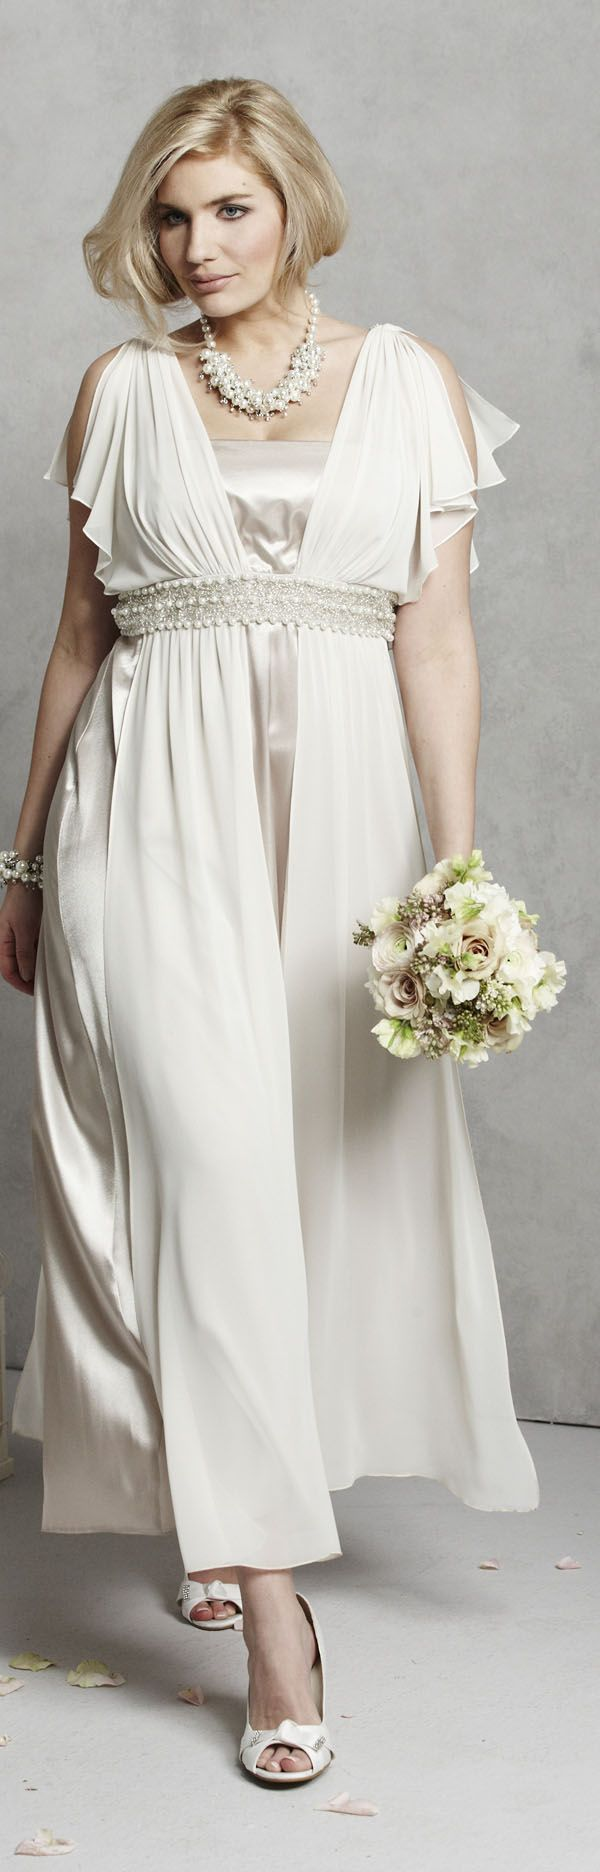 6 Vintage Hippie Wedding Dress Ideas and Plus Sizes for second Weddings - Read this article and other articles for Baby Boomer Women at: http://boomerinas.com/2012/12/6-vintage-hippie-wedding-dress-ideas-for-your-second-marriage/